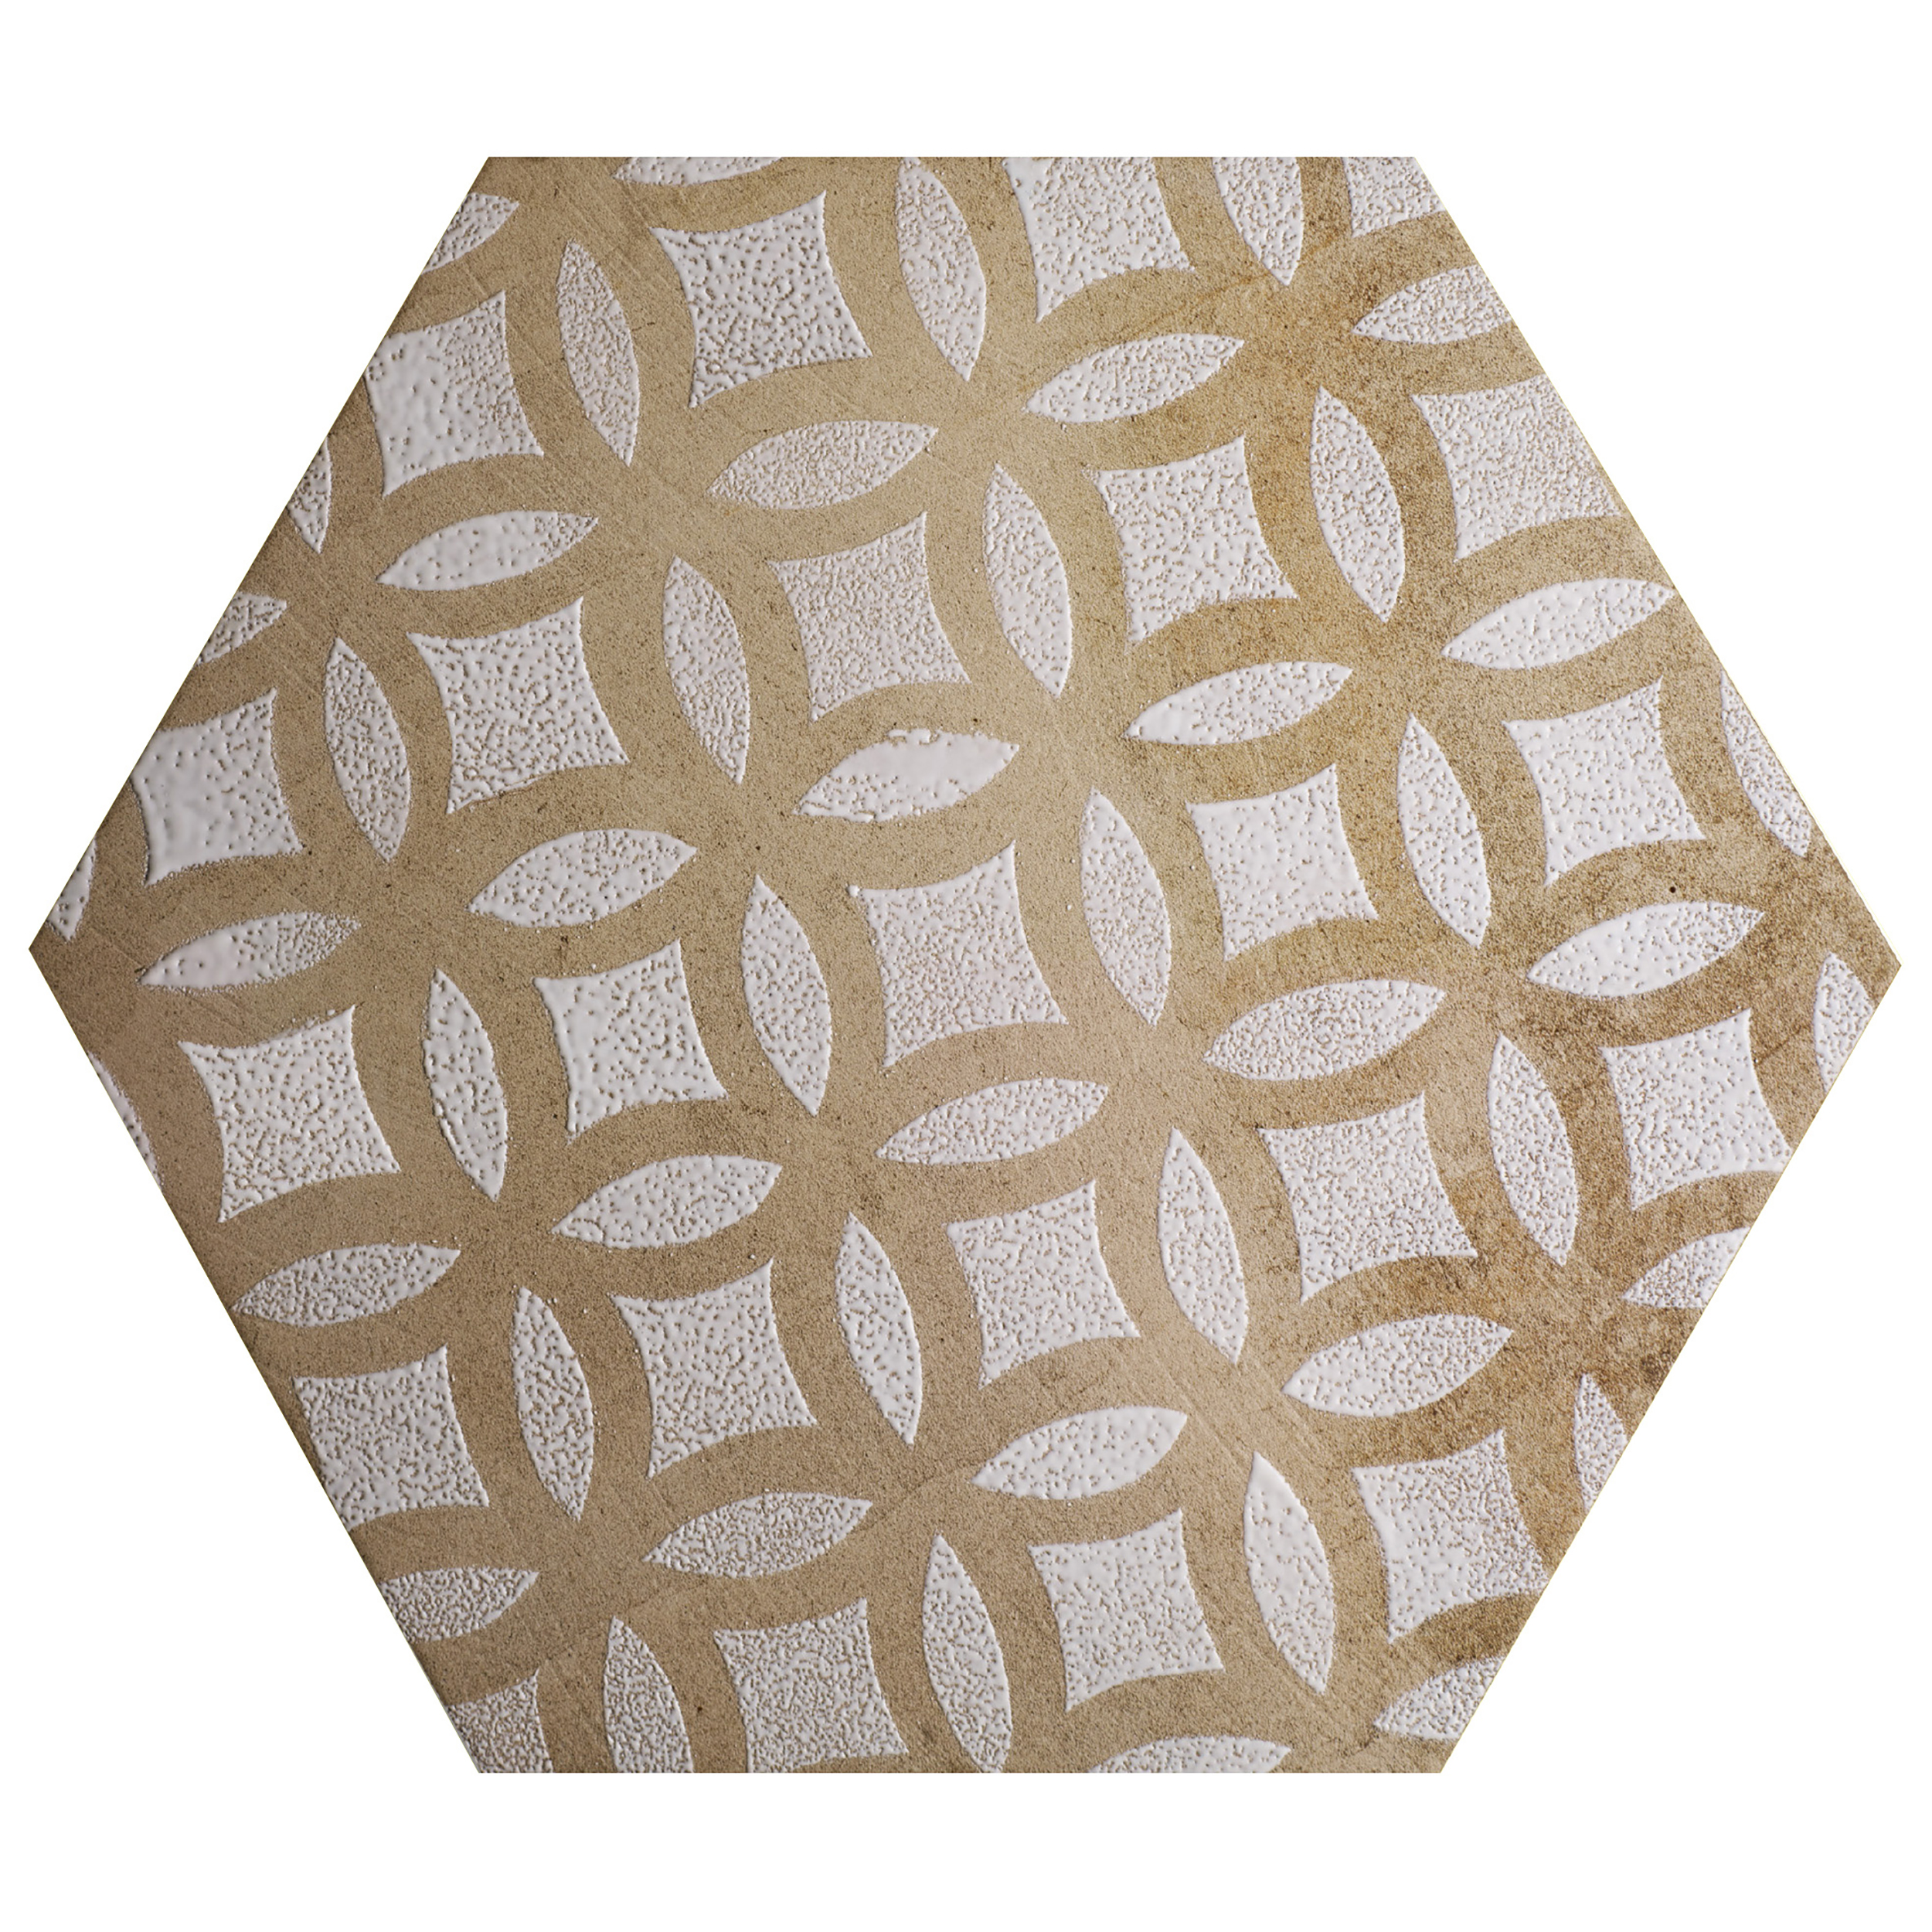 Square Tiles Mix Decorations Beige -  | Matter of Stuff